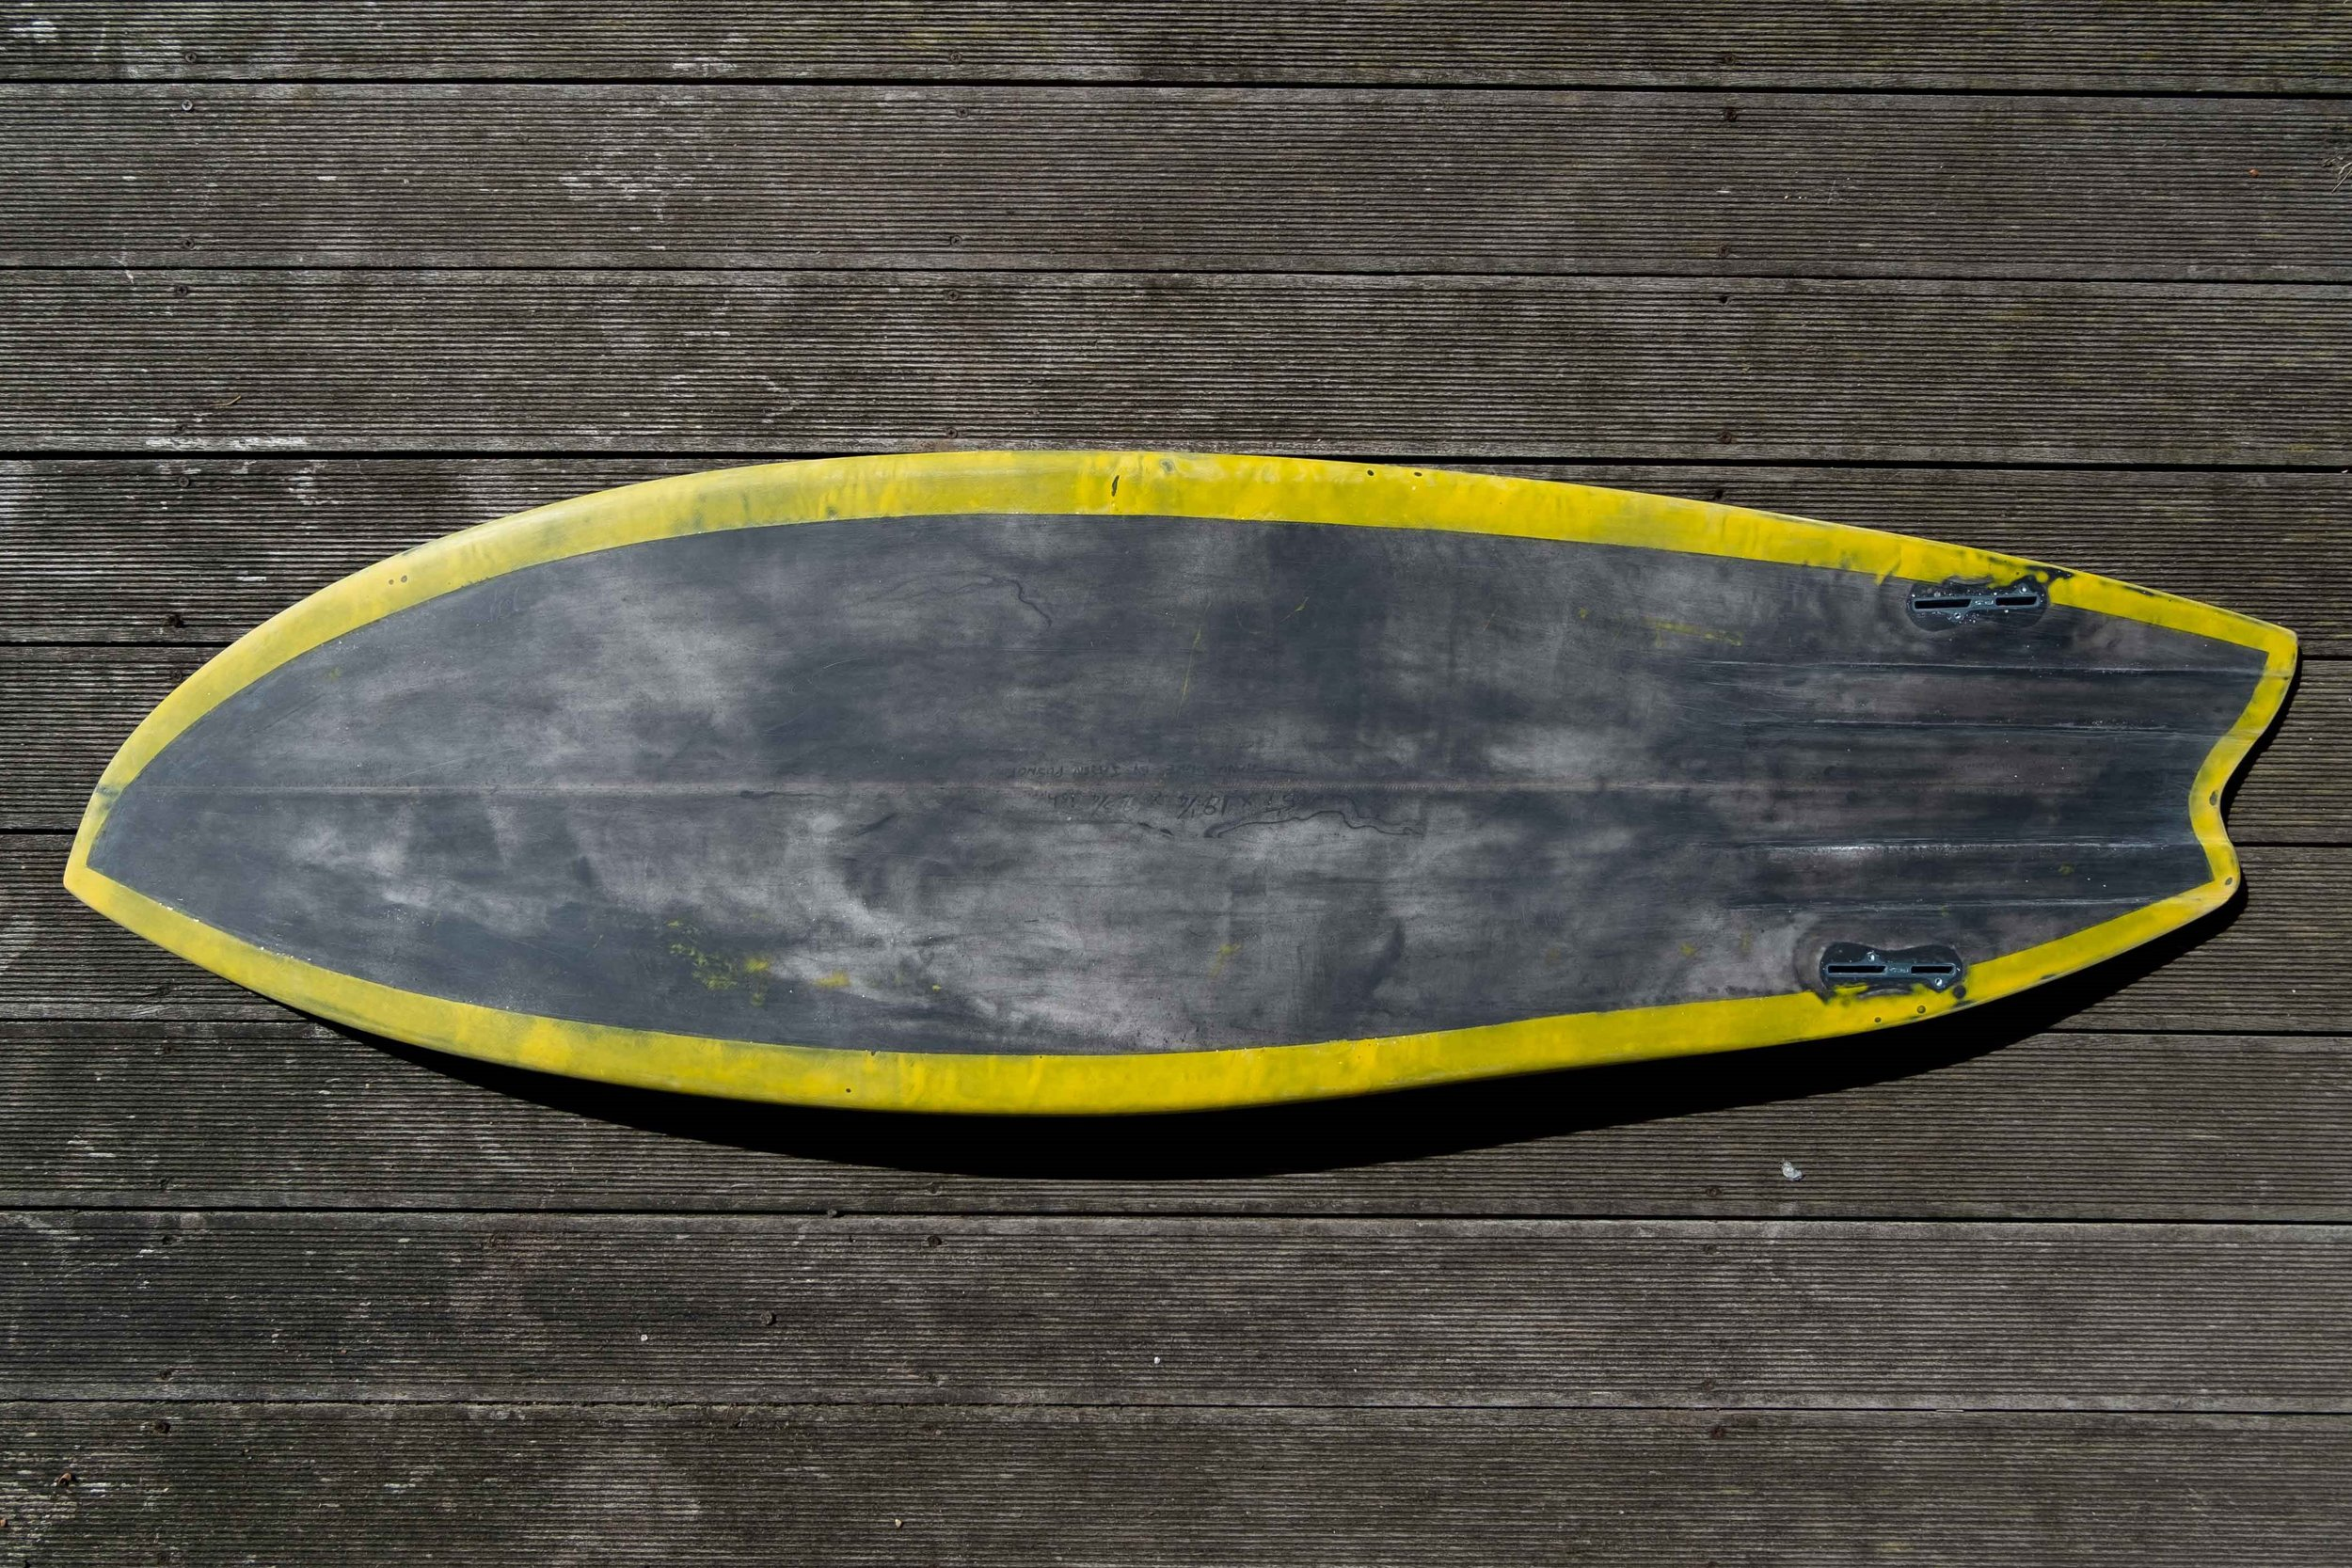 Asymmetric 2.0 // Experimental Surfboard Design -